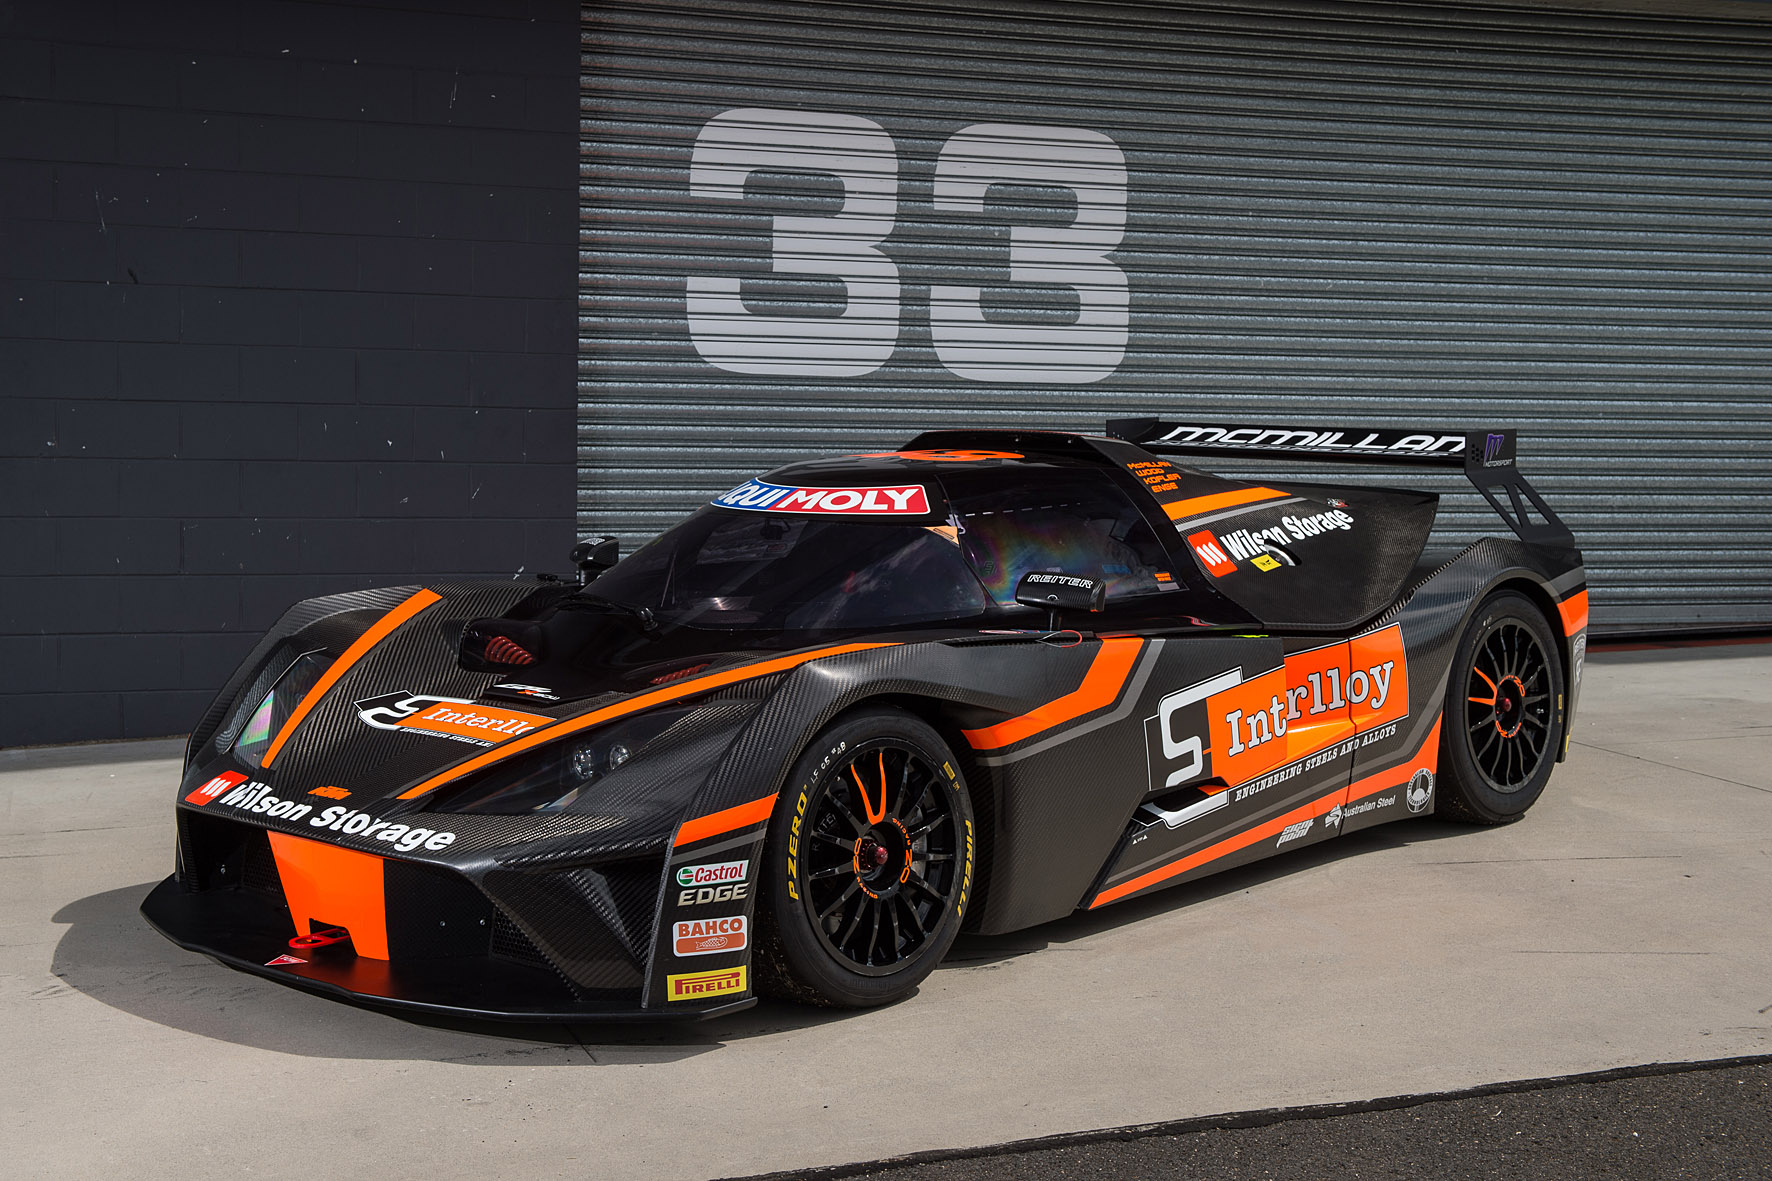 Ktm X Bow Price >> 2018 Ktm X Bow Gt4 Only 15 Units Rm946k All Sold